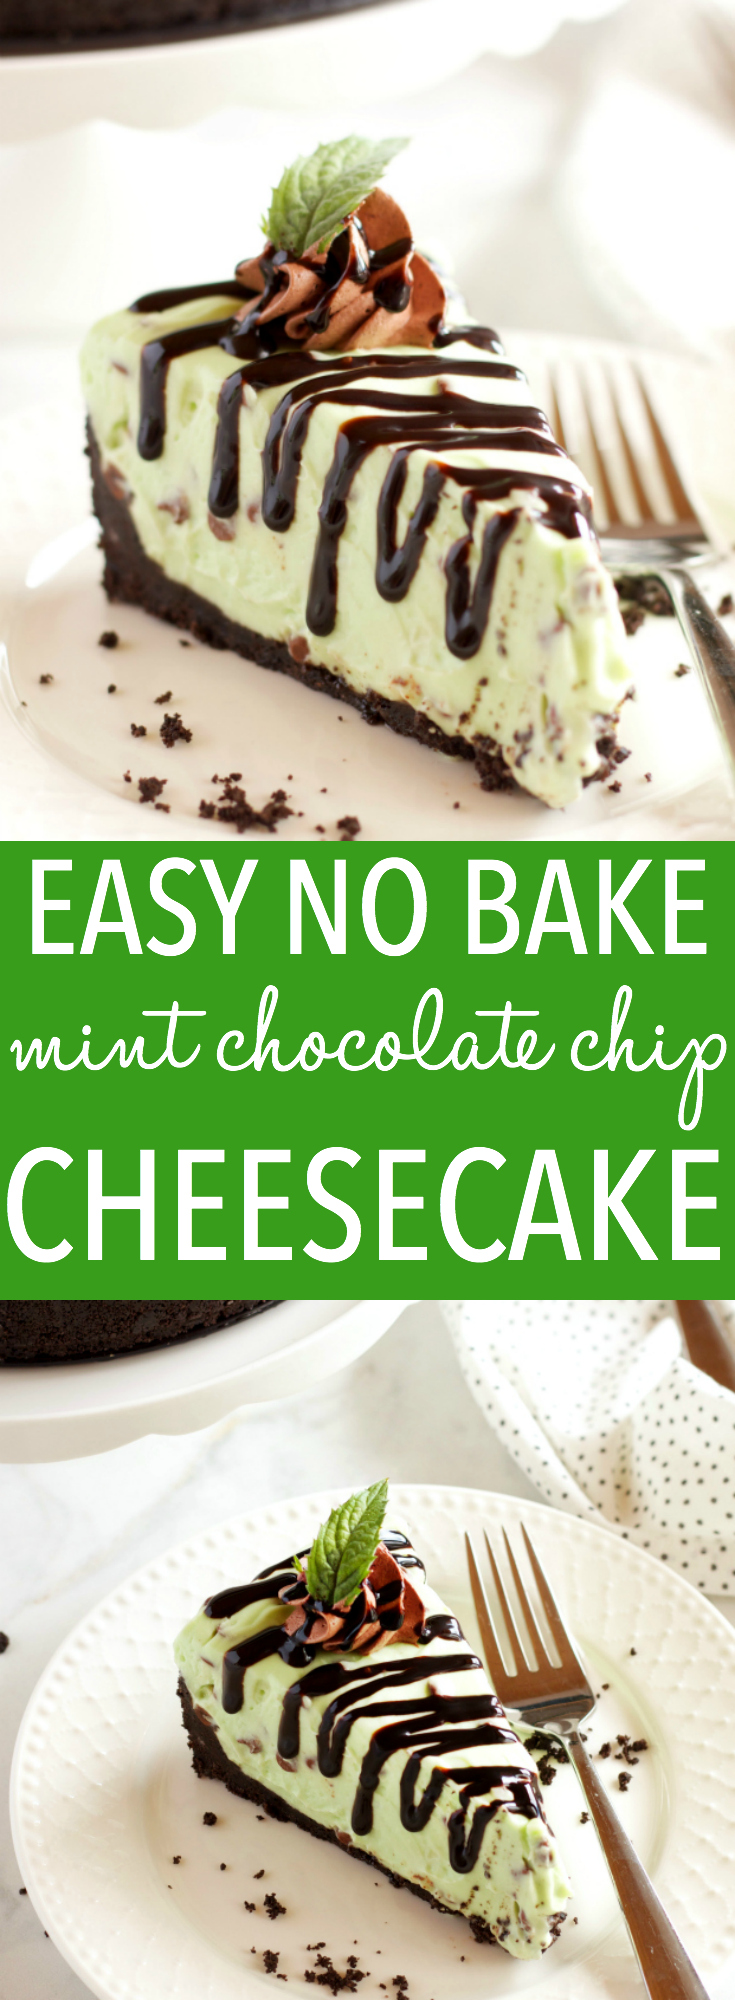 This Easy No Bake Mint Chocolate Chip Cheesecake is ultra creamy, flavored with mint and chocolate, and so easy to make with only a few ingredients! Recipe from thebusybaker.ca! #holidaydessert #easydessert #nobakecheesecakerecipe via @busybakerblog